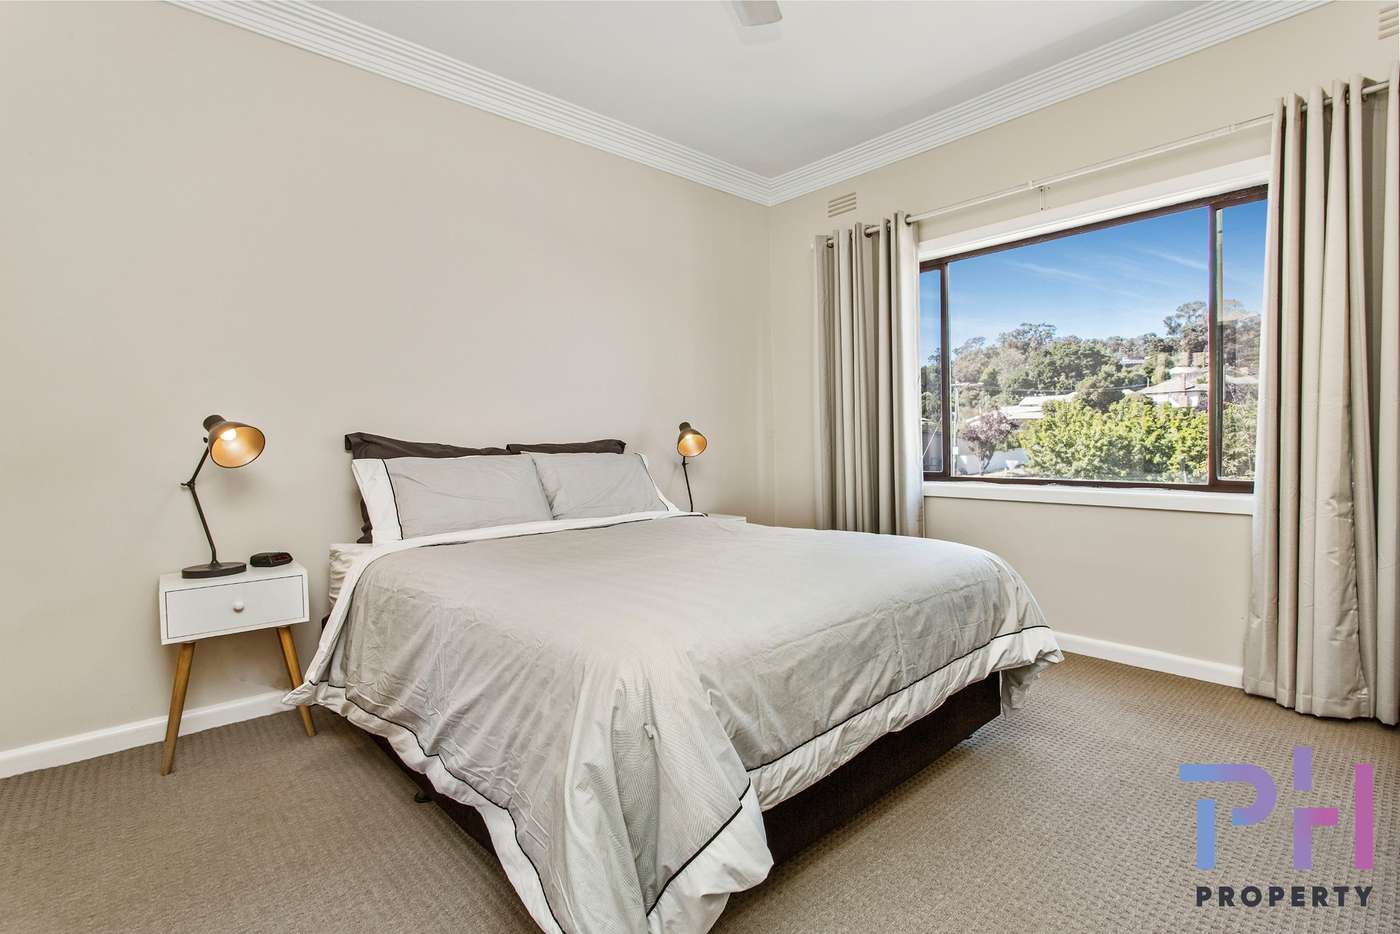 Sixth view of Homely house listing, 99 Condon Street, Kennington VIC 3550